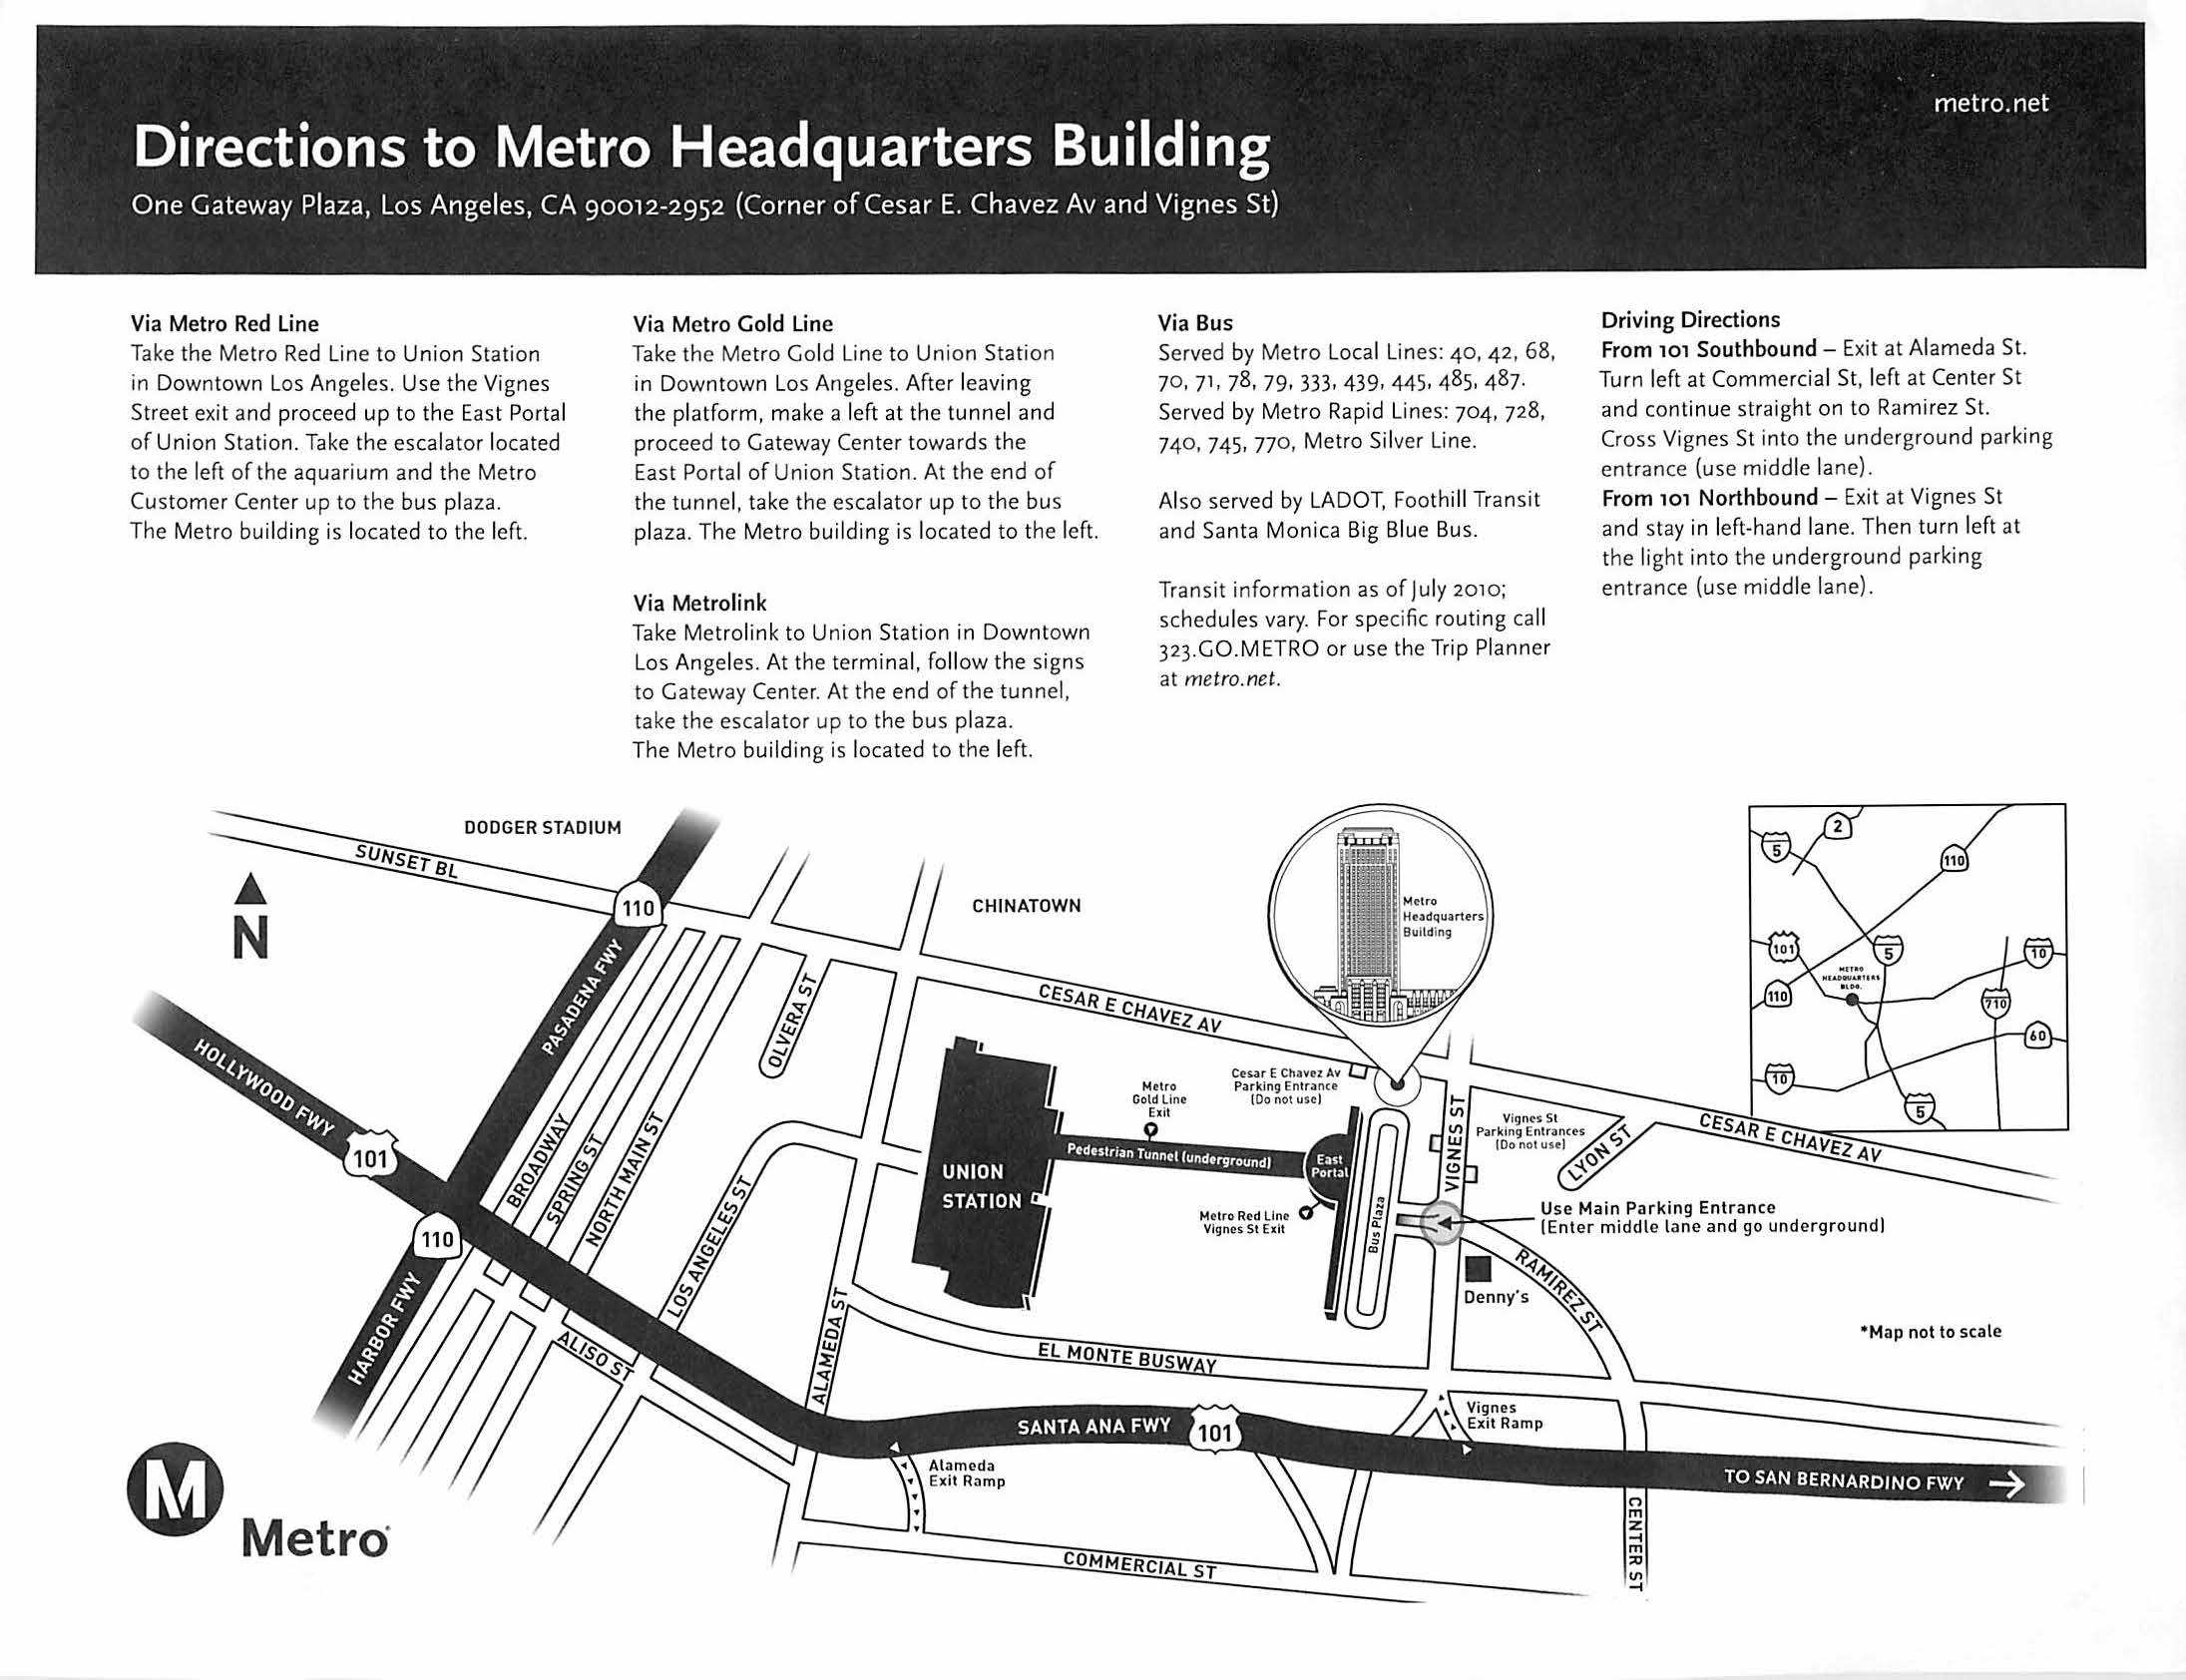 Directions to Metro Headquarters Building